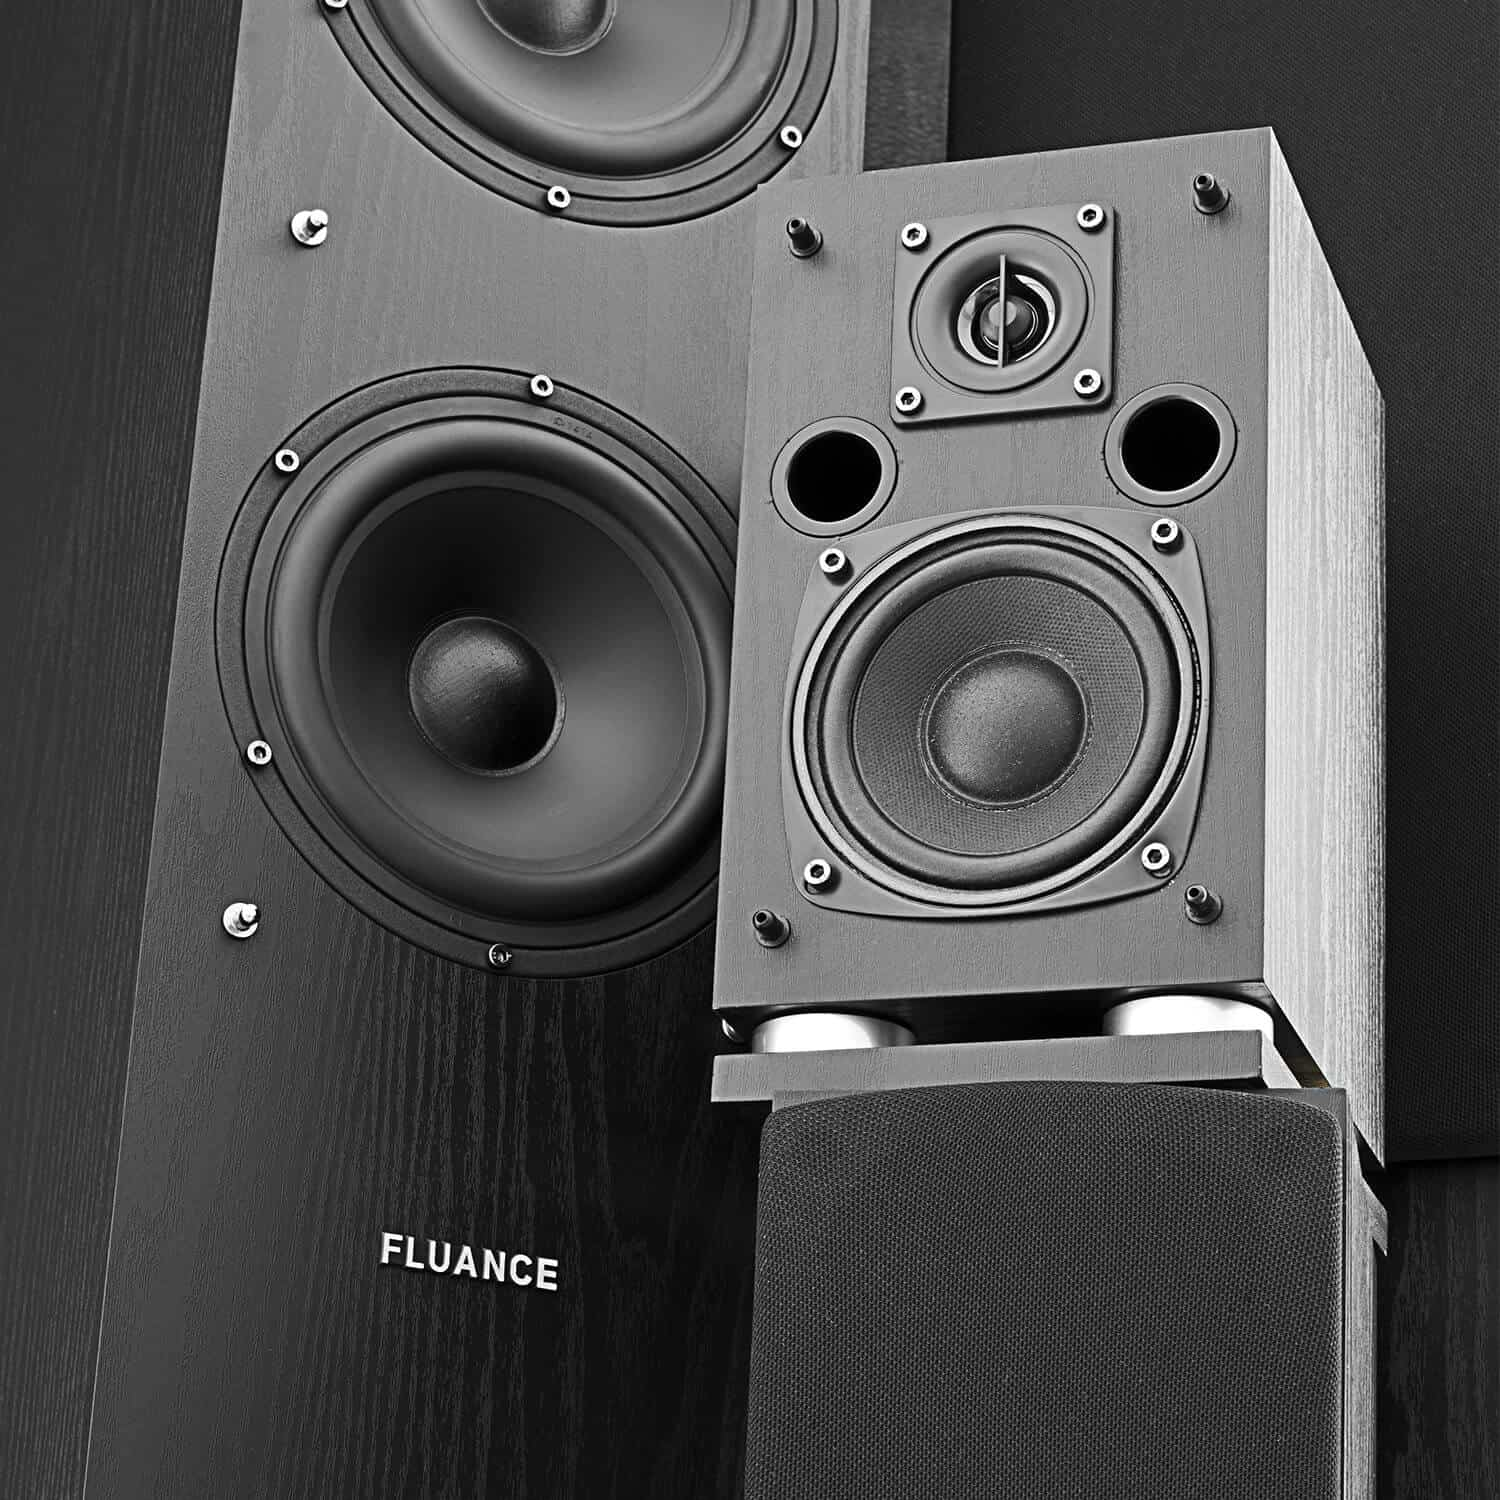 Fluance SXHTB-BK High Definition Surround Sound Home Theater